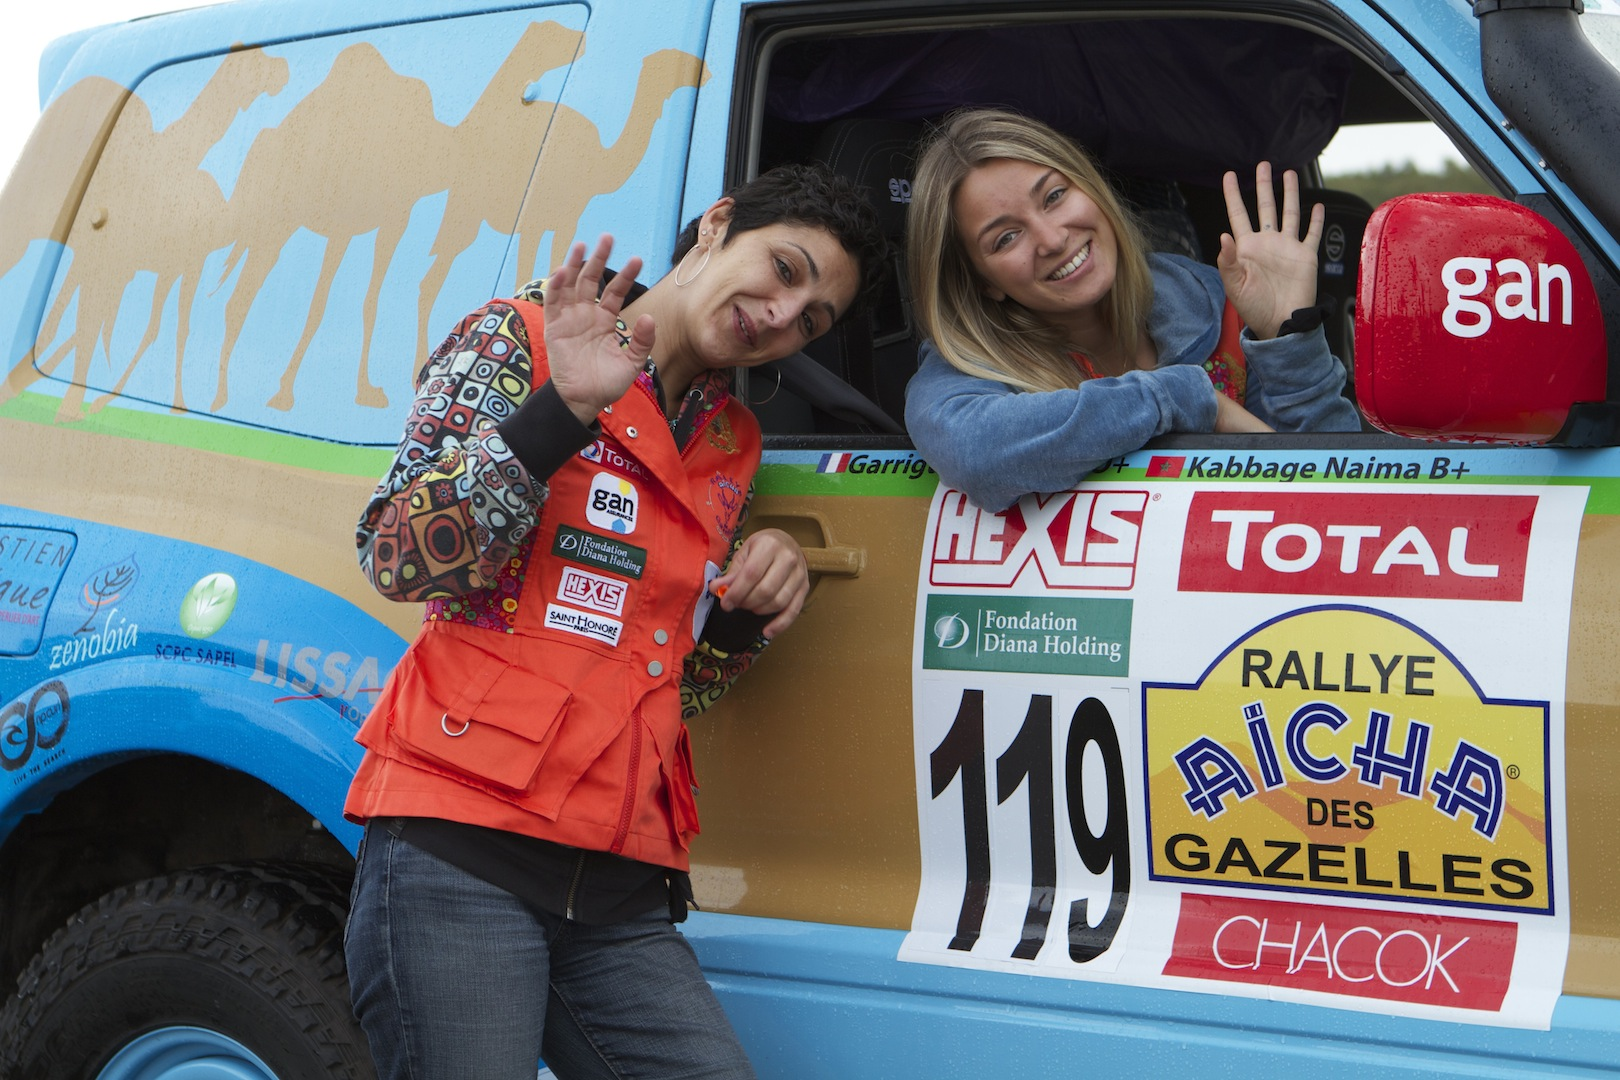 Rally Aicha des Gazelles, First Stage (picture by Helene Clemenson for Morocco World News)